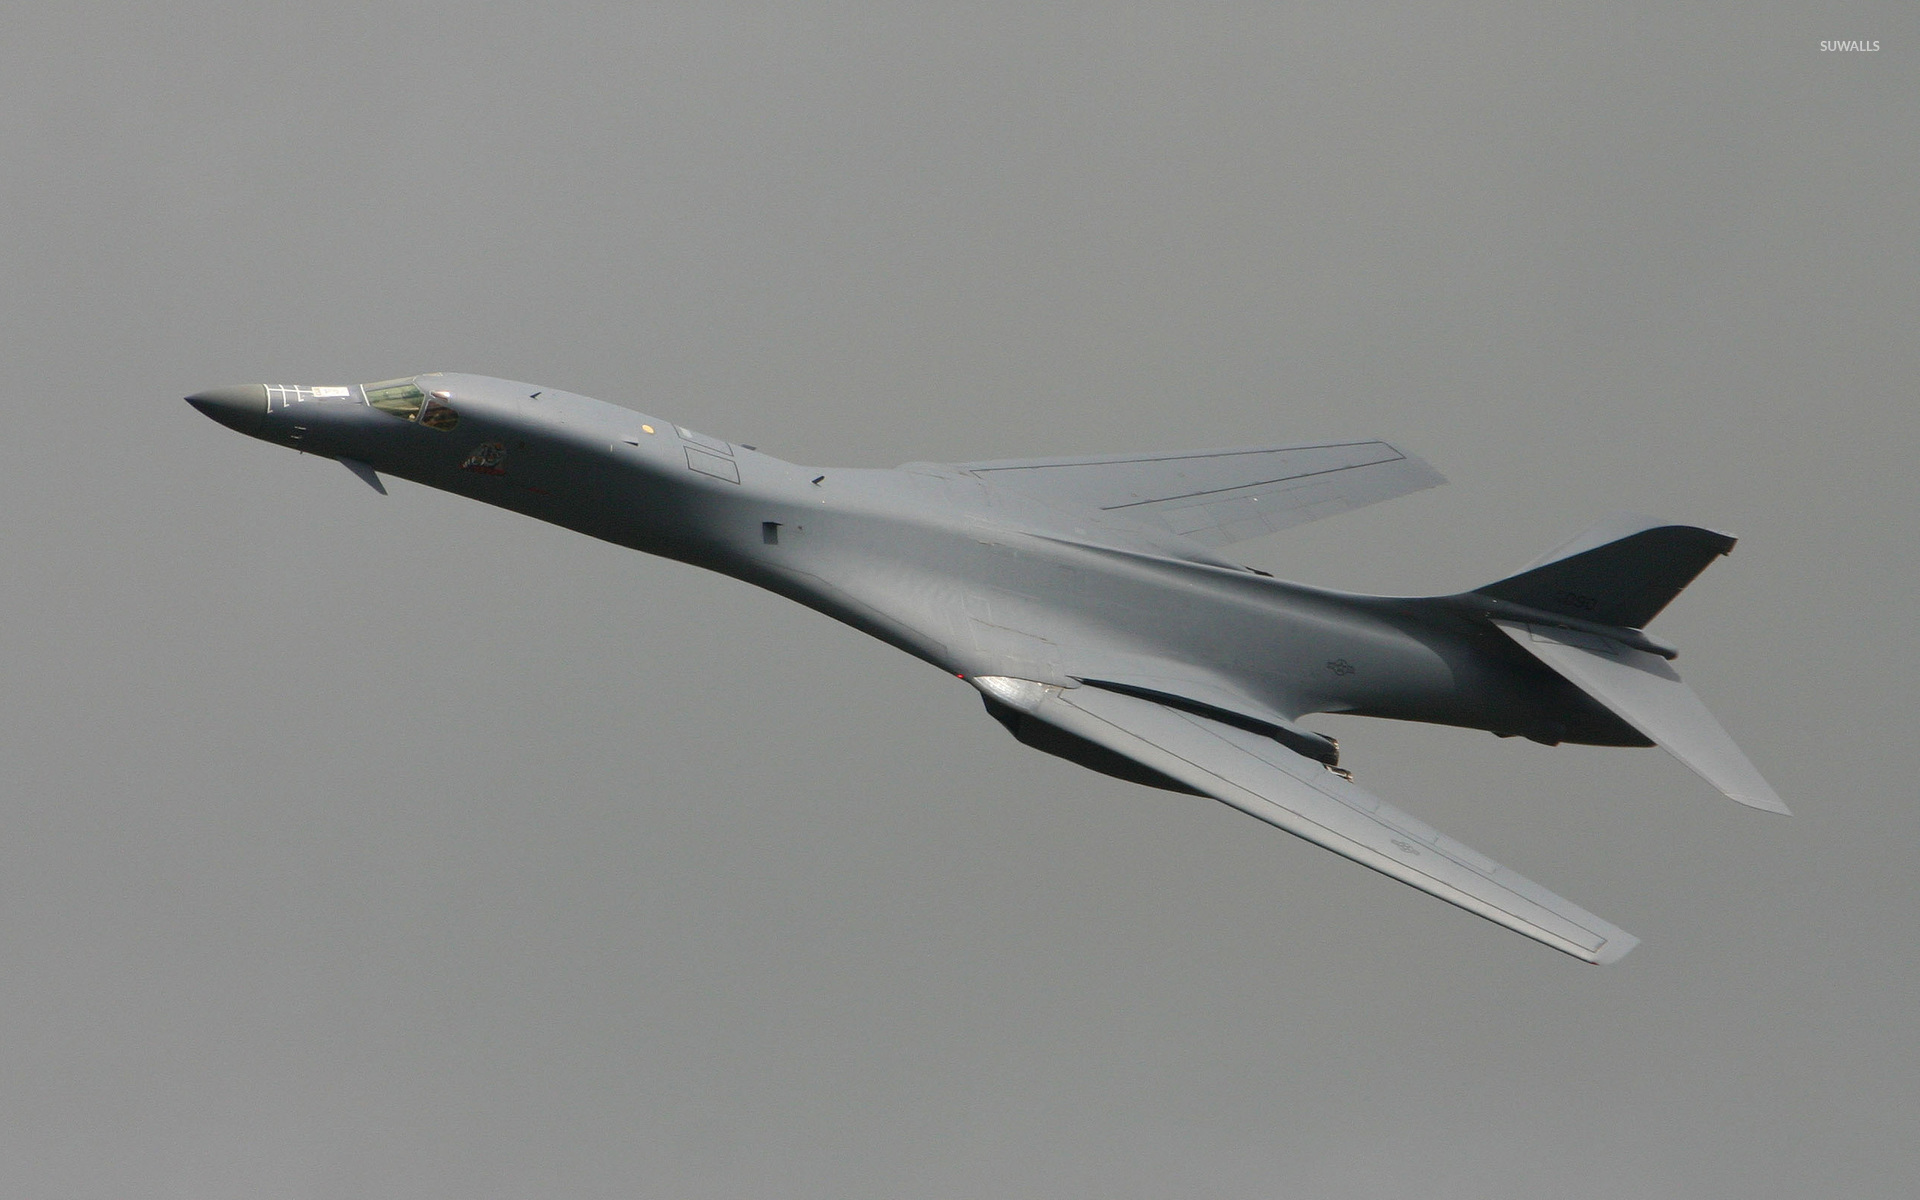 Rockwell B-1 Lancer wallpaper - Aircraft wallpapers - #3633 B1 Lancer Wallpaper